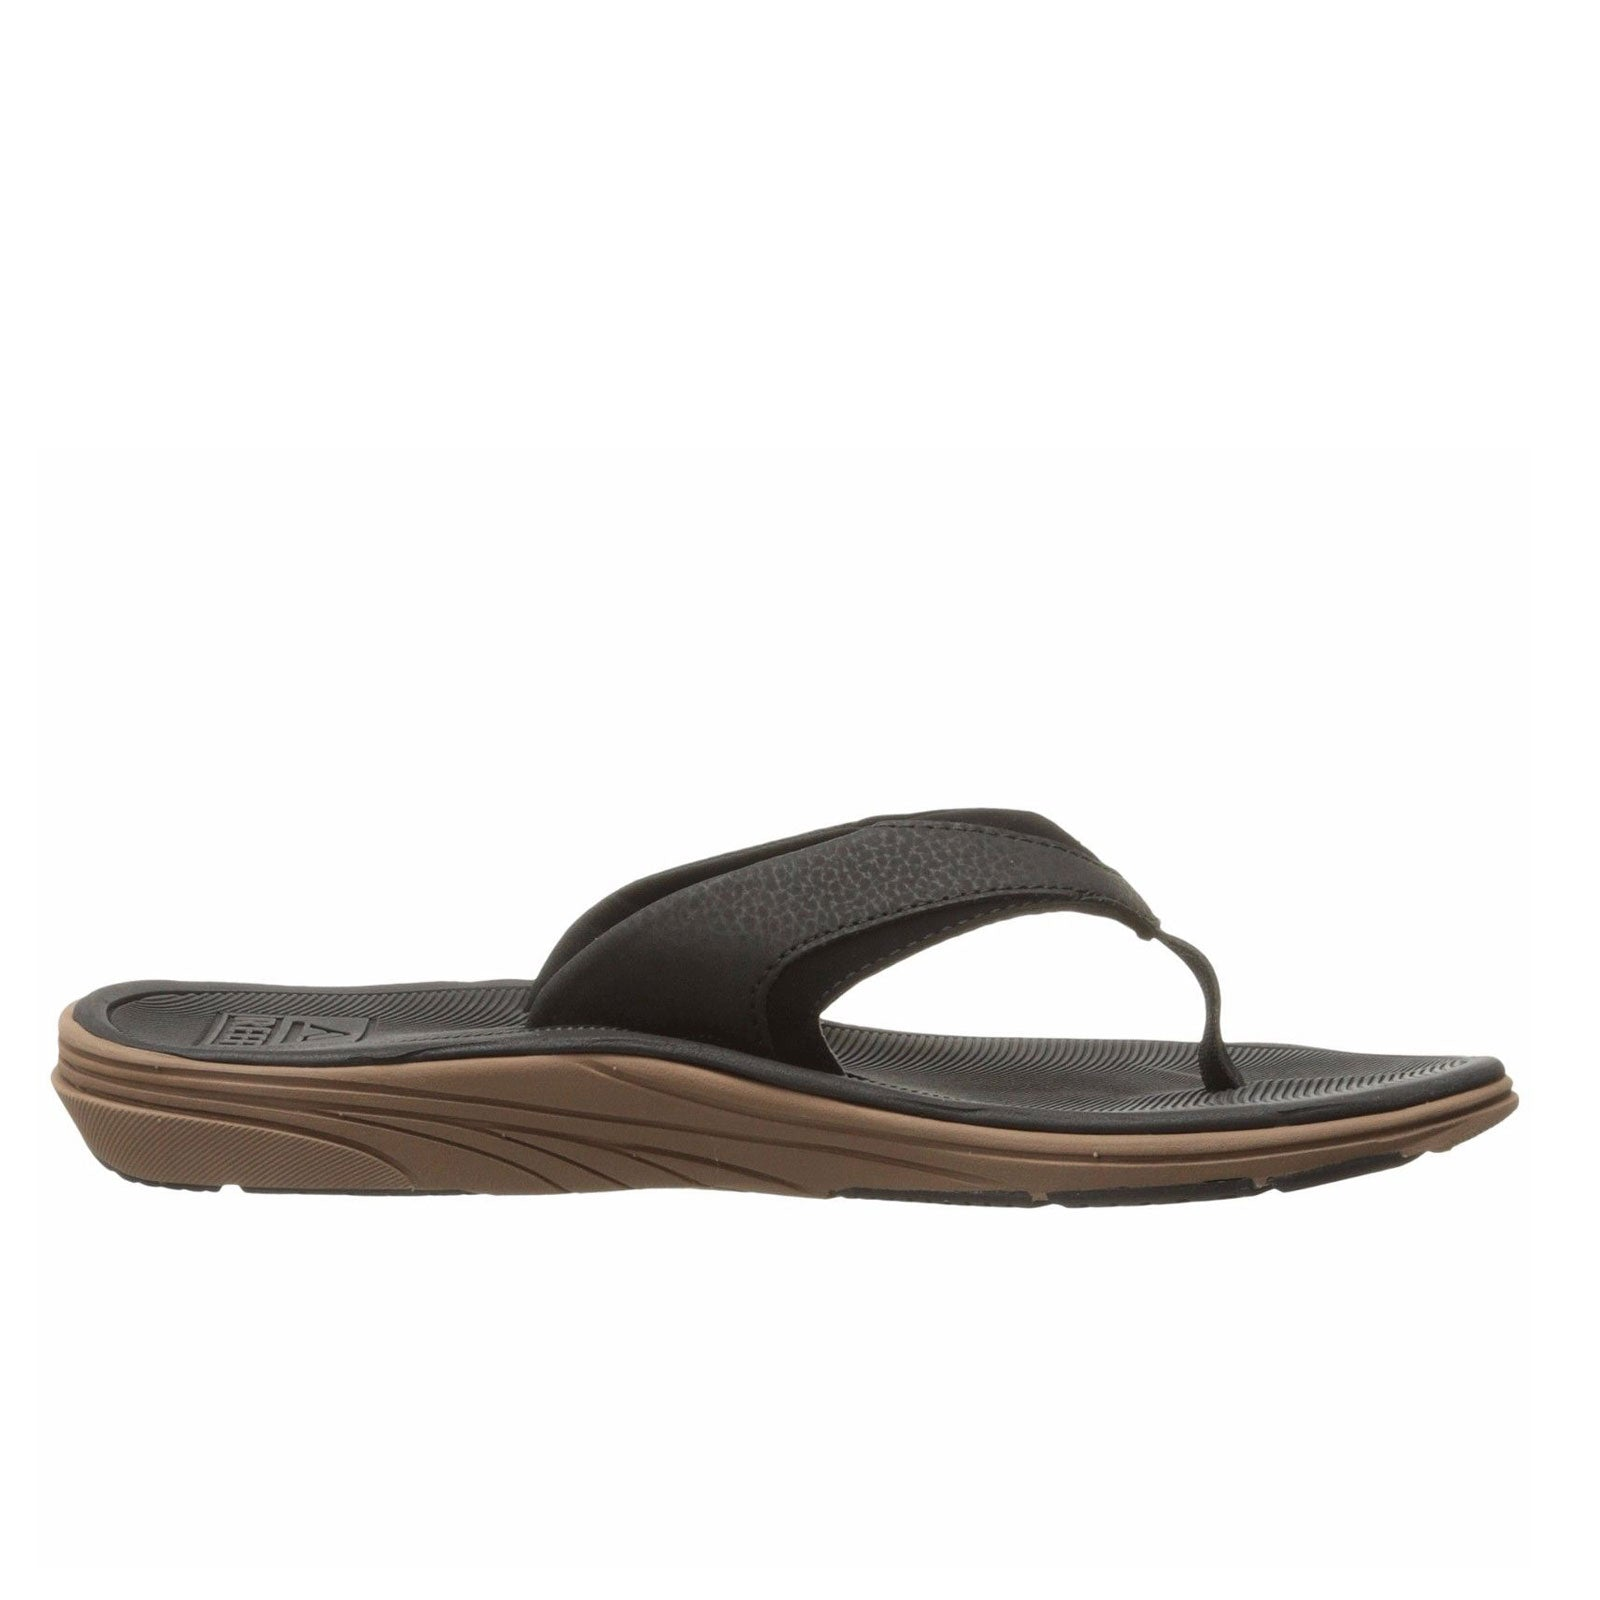 Reef Modern- Black / Brown